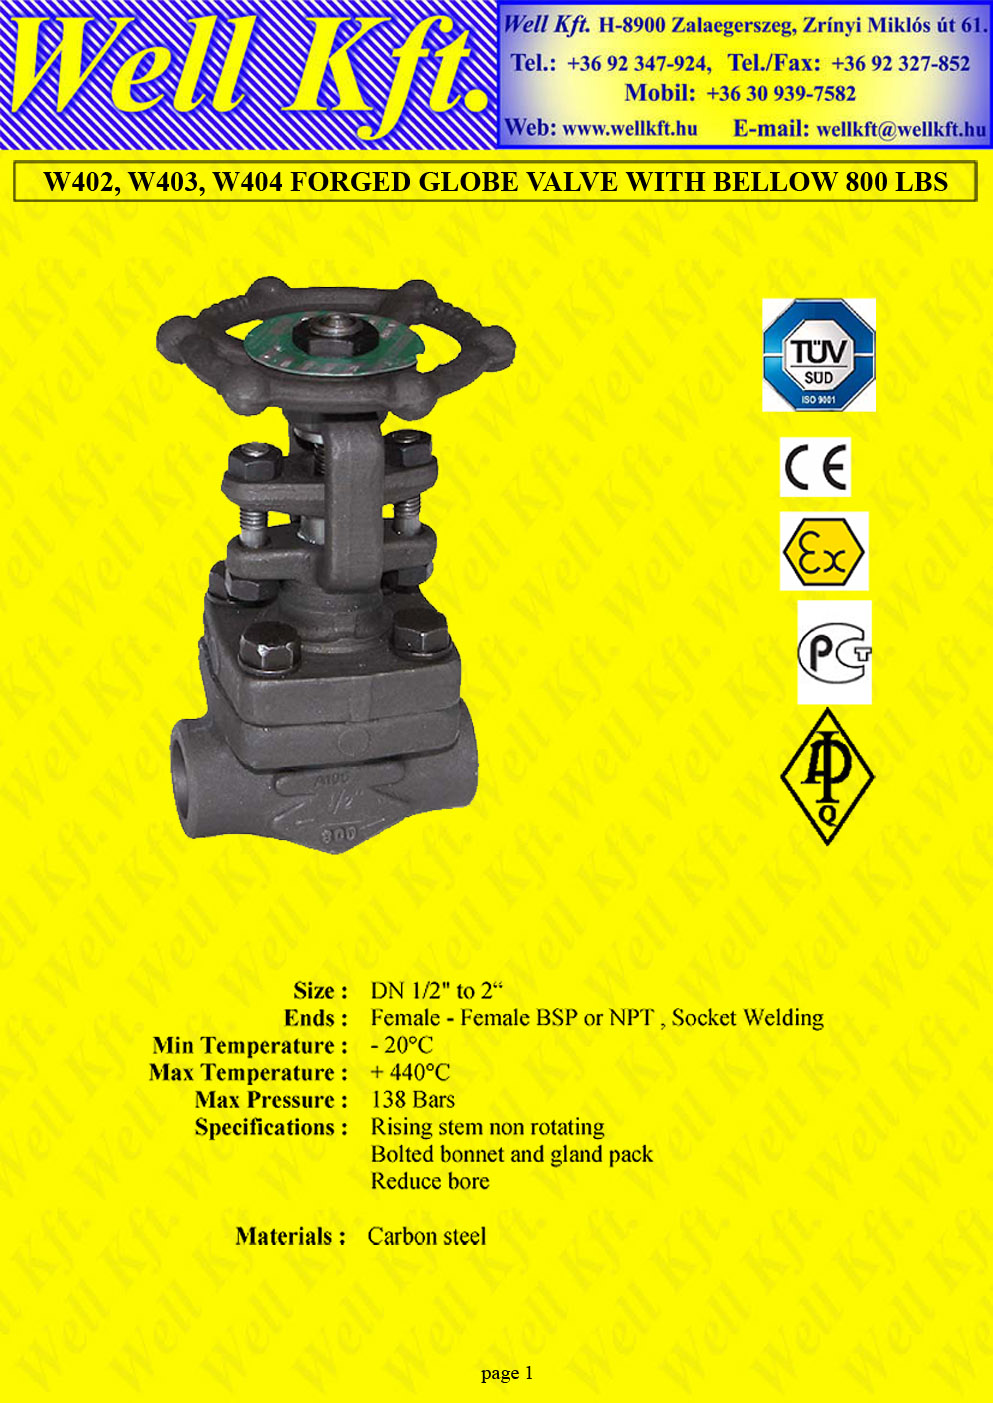 Globe valve forged carbon steel PN 138